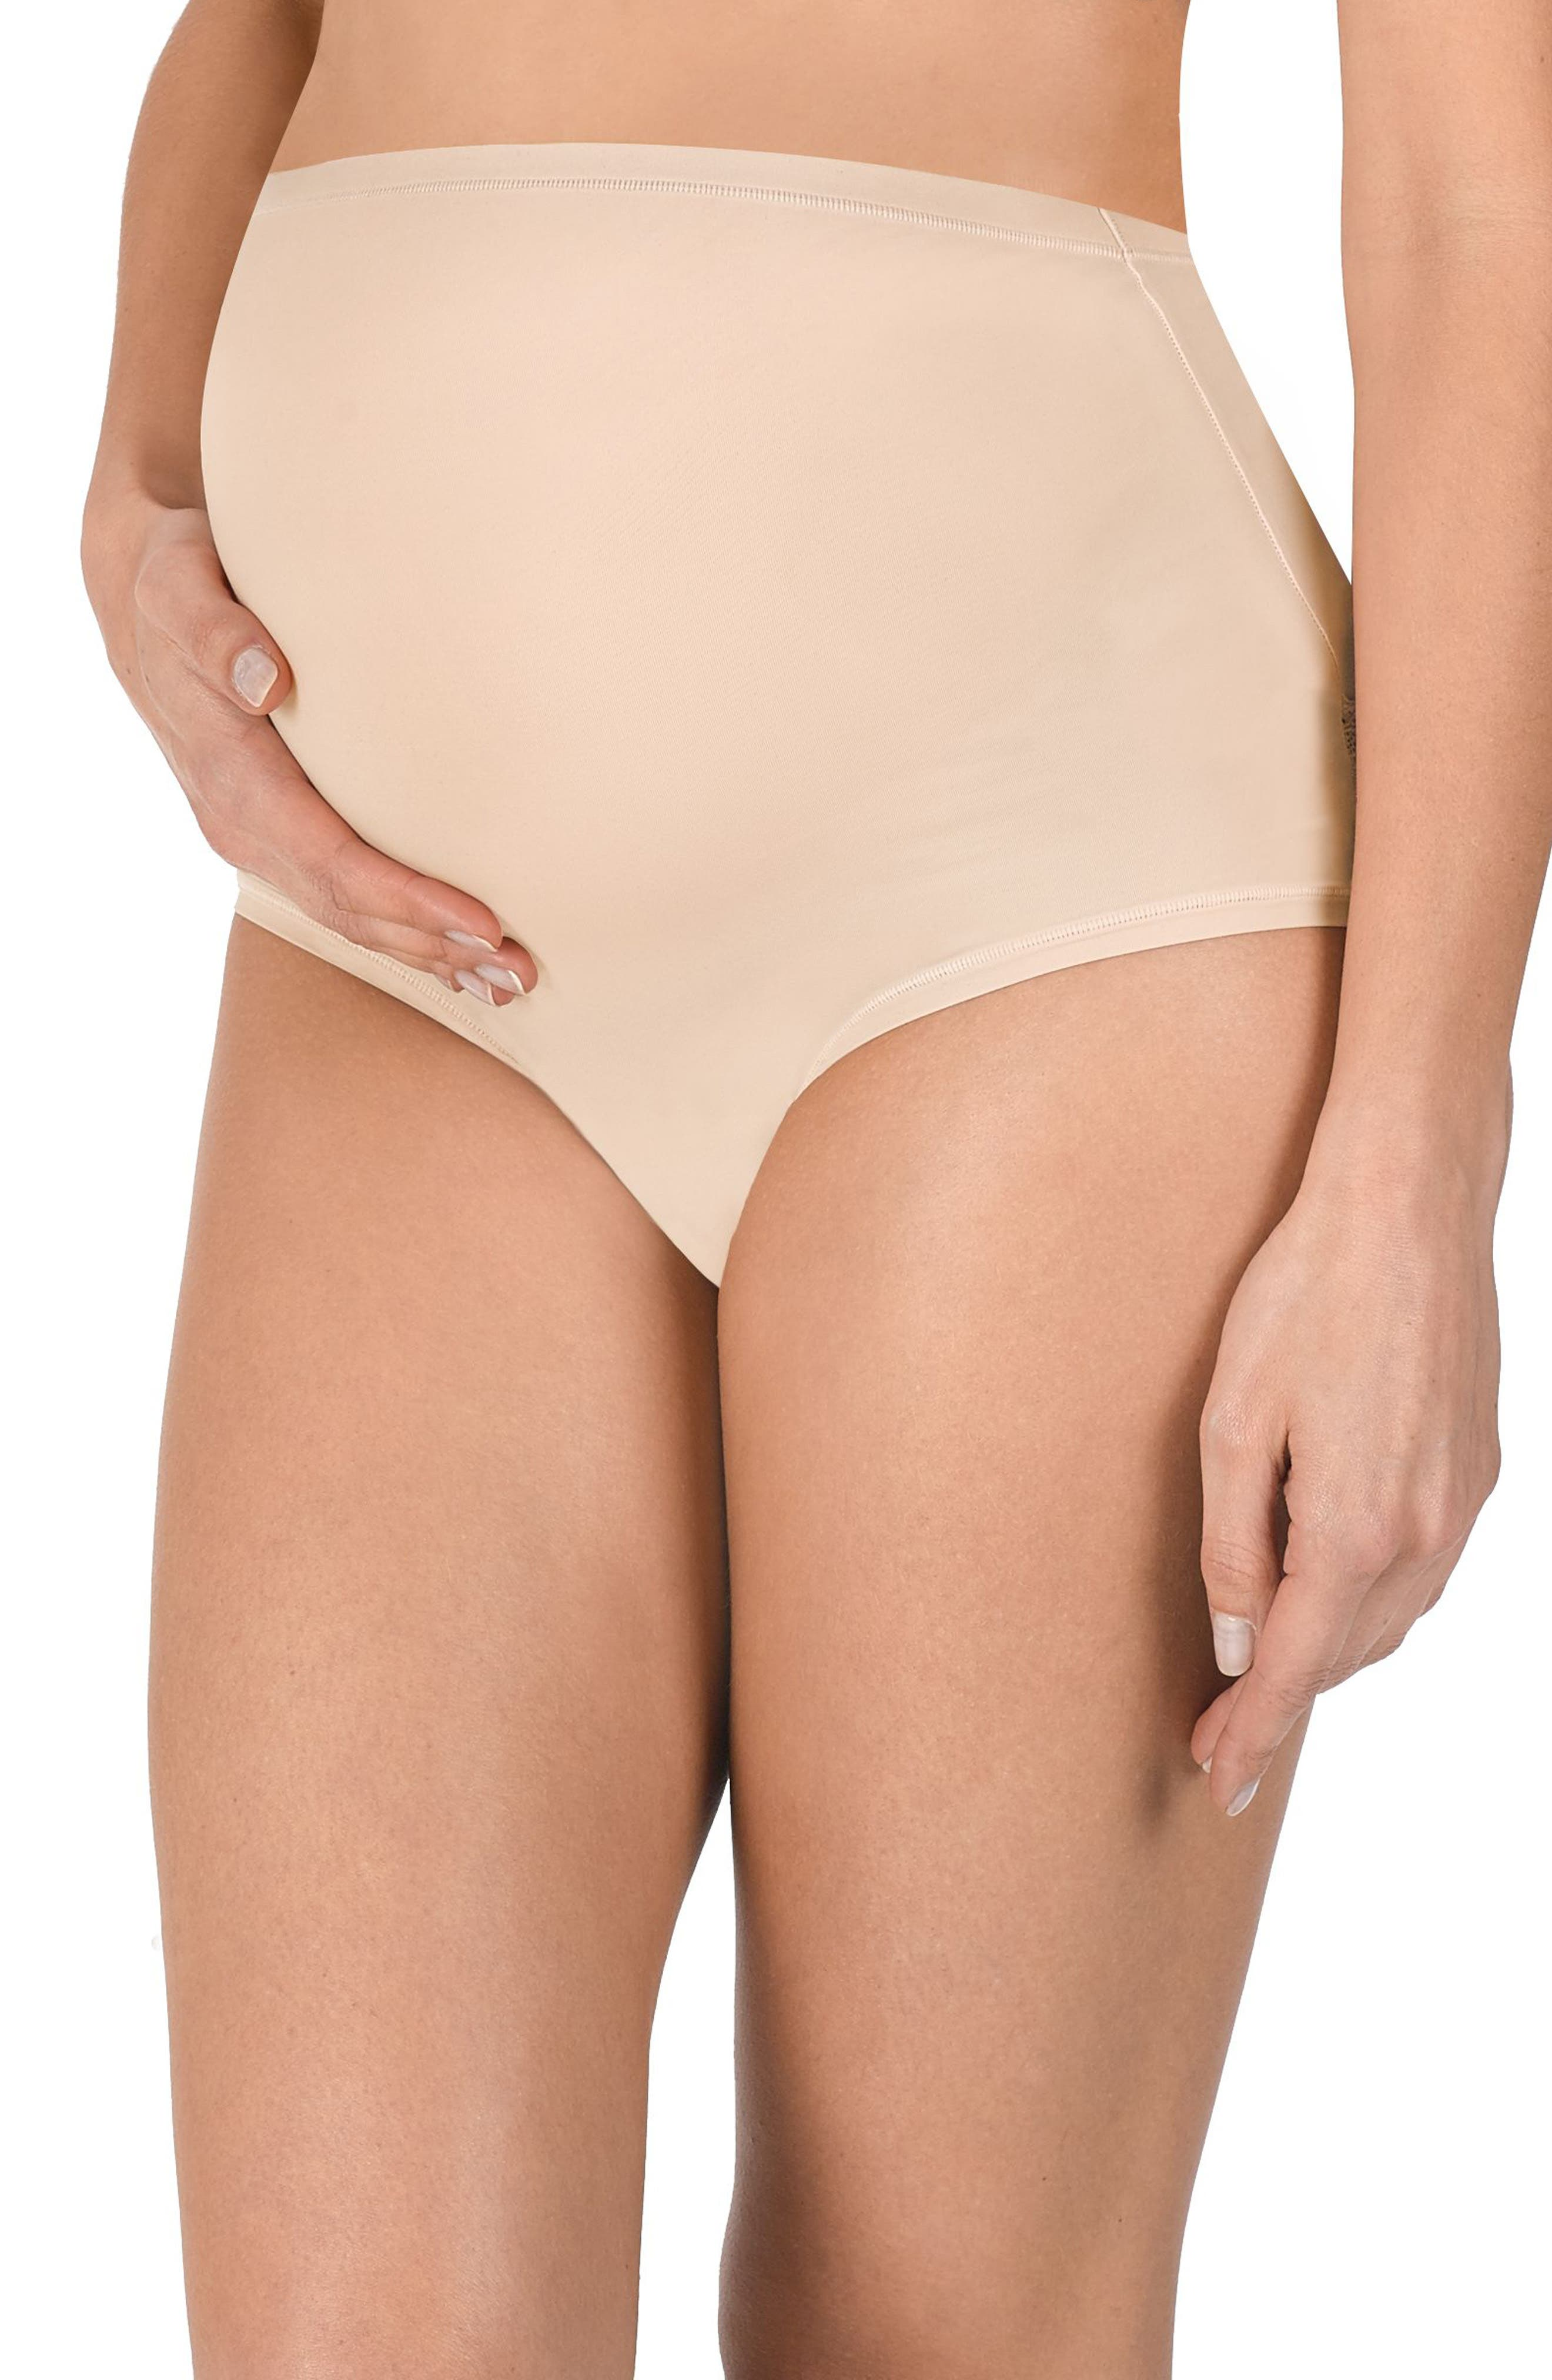 Bliss Maternity Briefs,                         Main,                         color, CAMEO ROSE